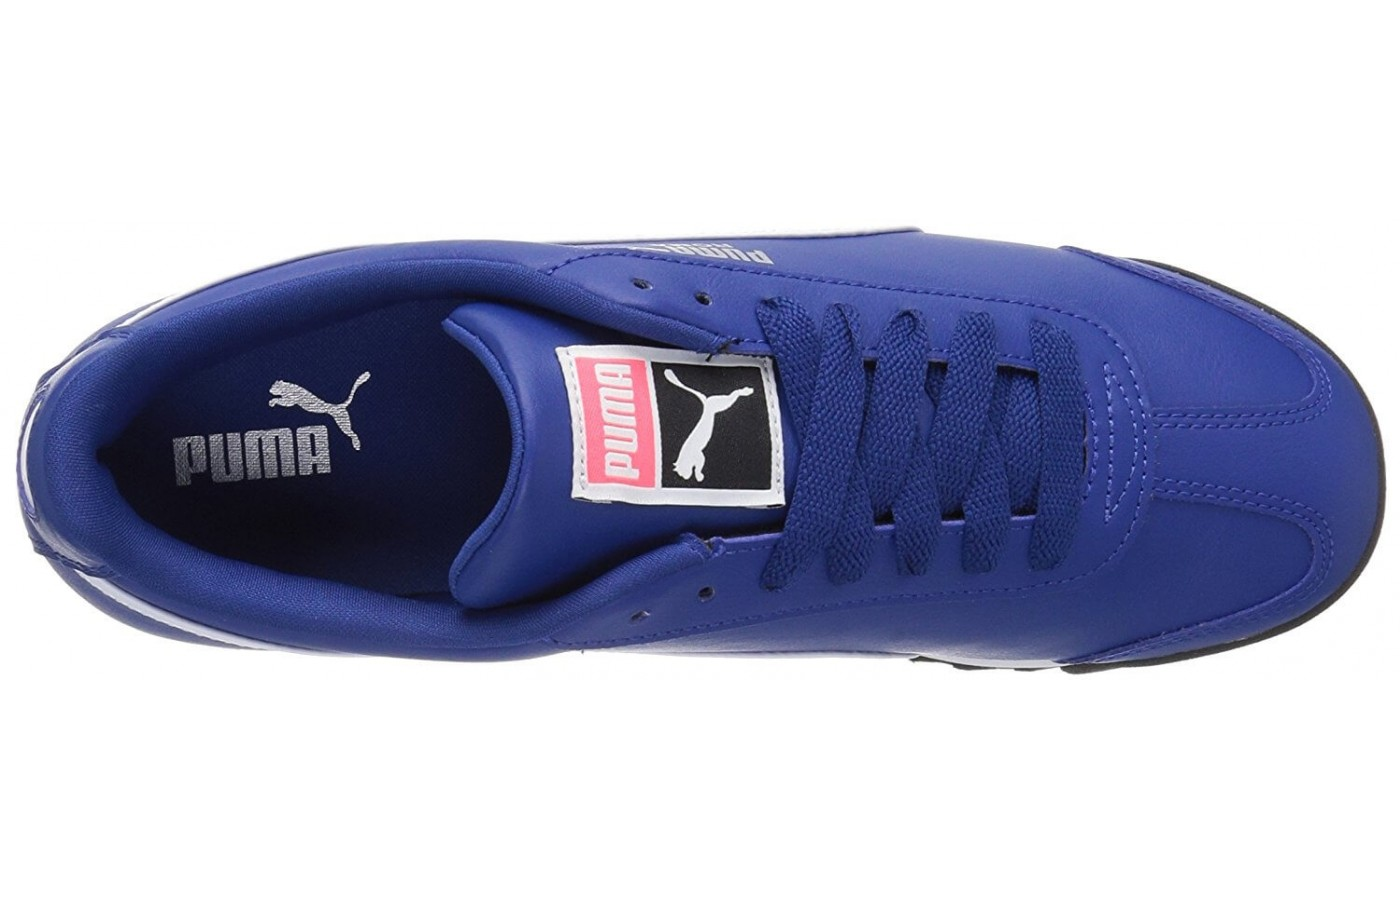 The Puma Roma features traditional laces